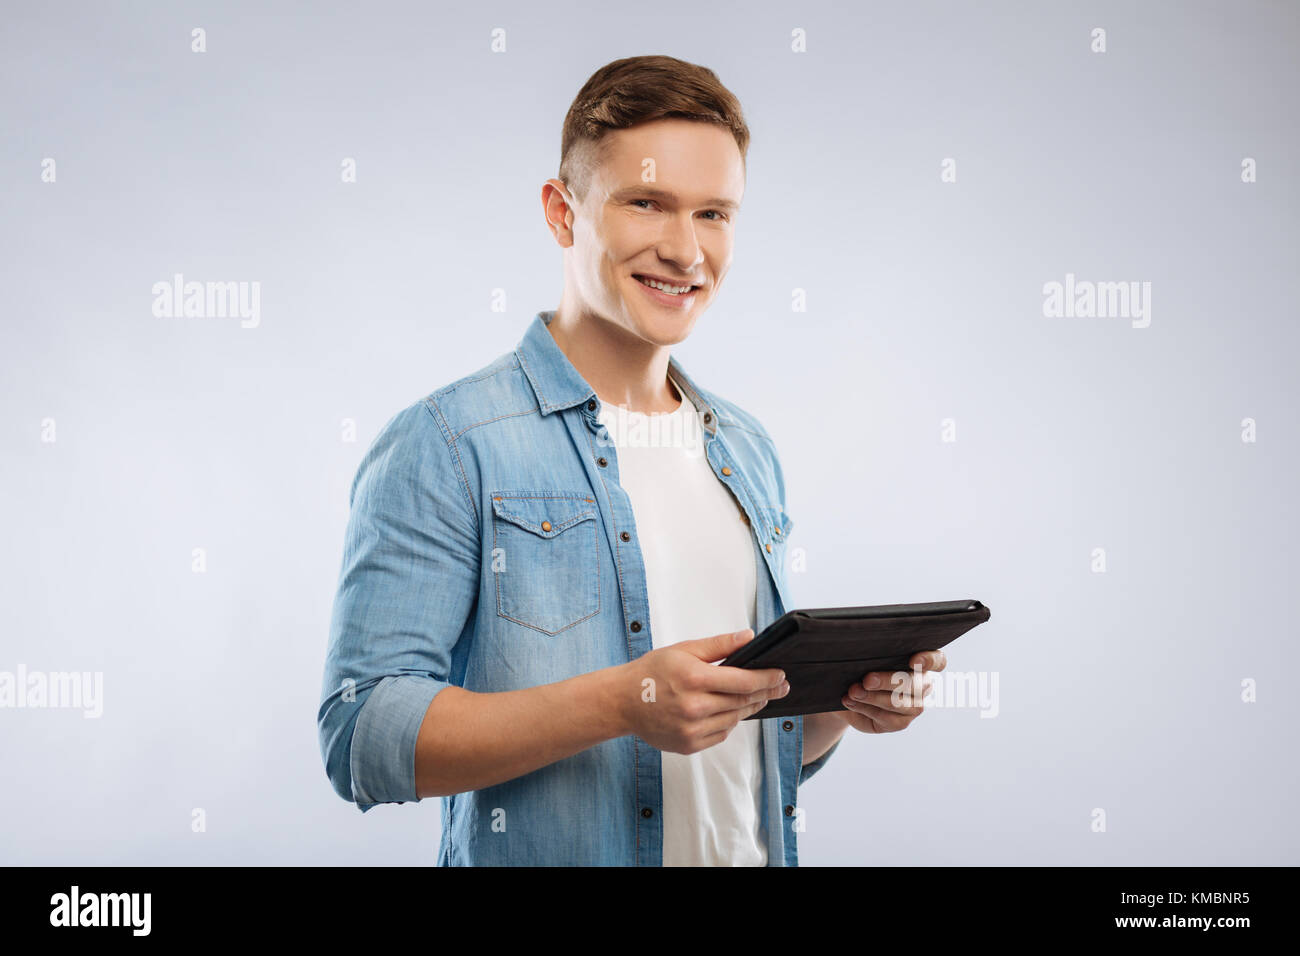 Handsome man holding his gadget - Stock Image